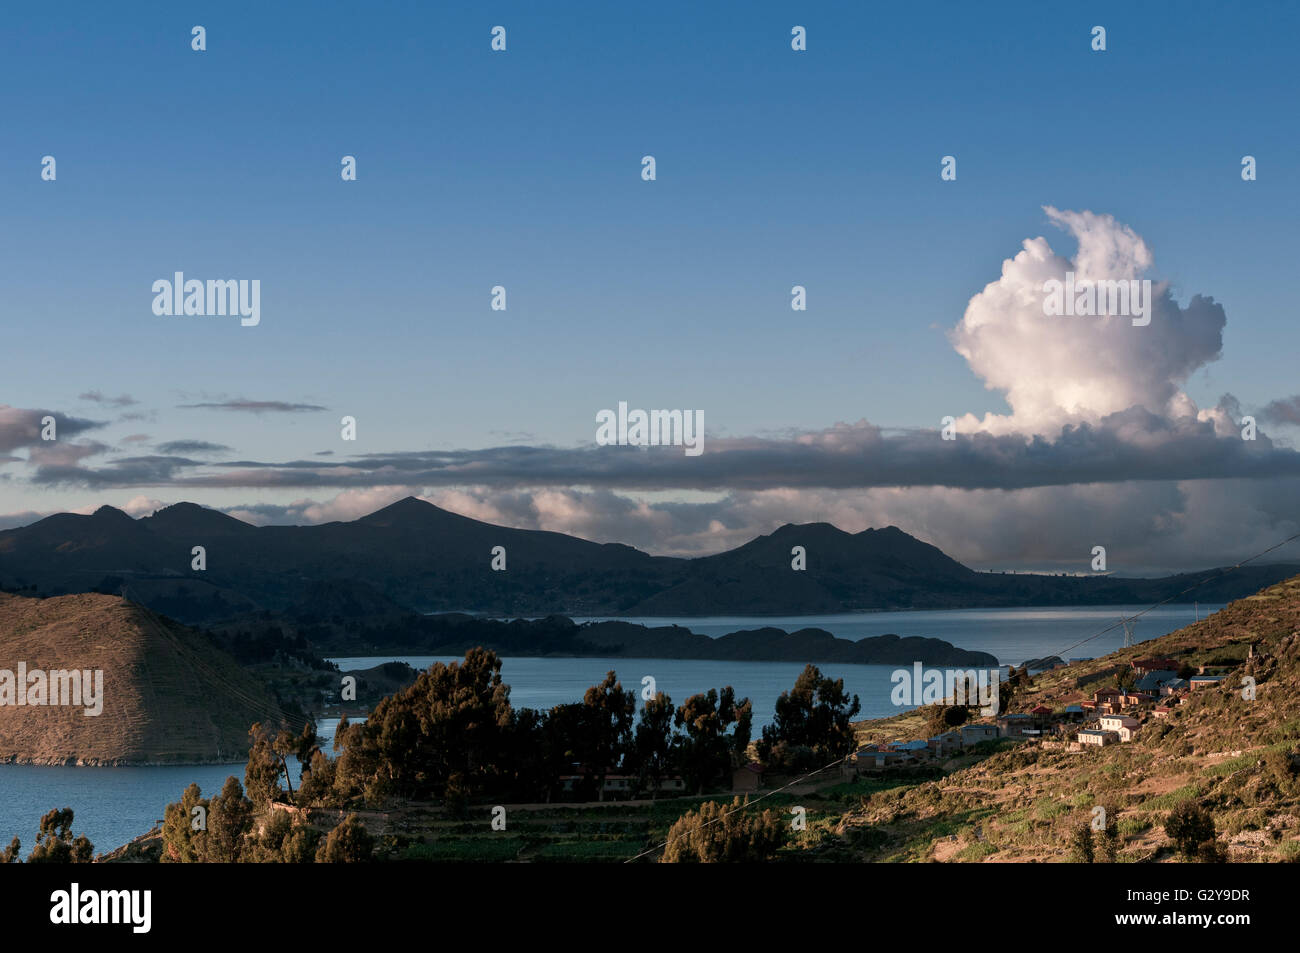 Isla del Sol, Lake Titicaca At Sunset With Clouds - Stock Image